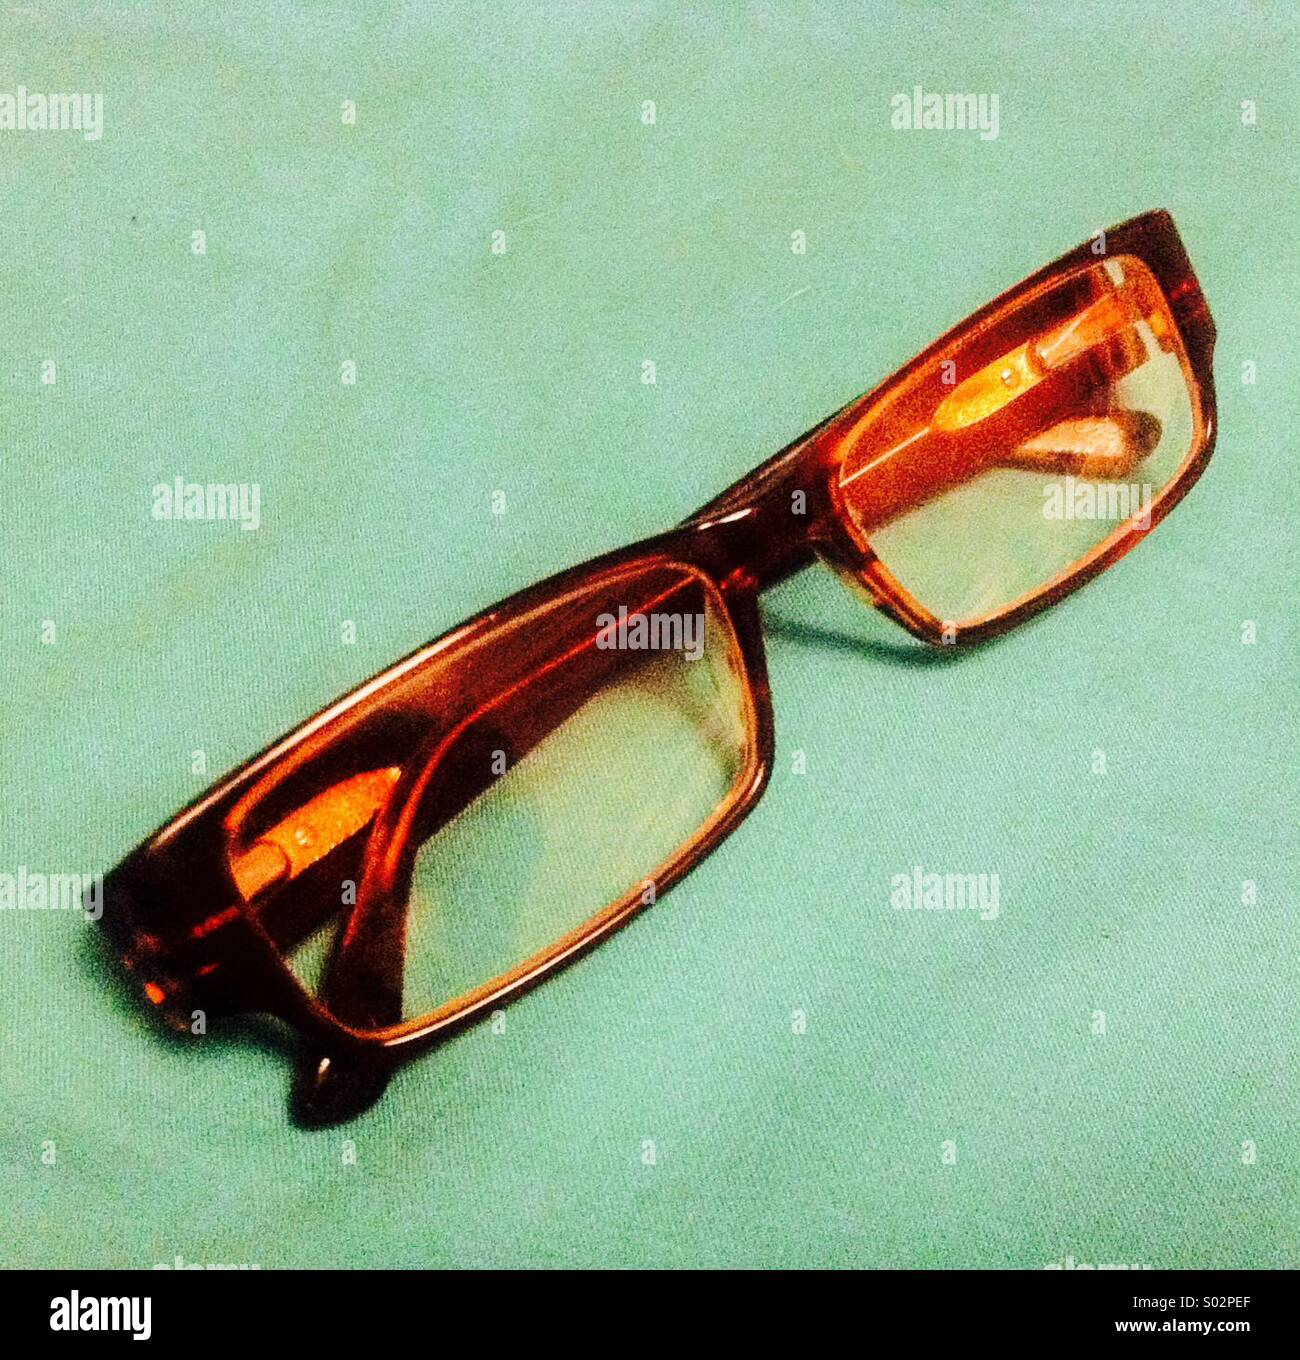 Vintage Spectacles Stock Photos & Vintage Spectacles Stock Images ...